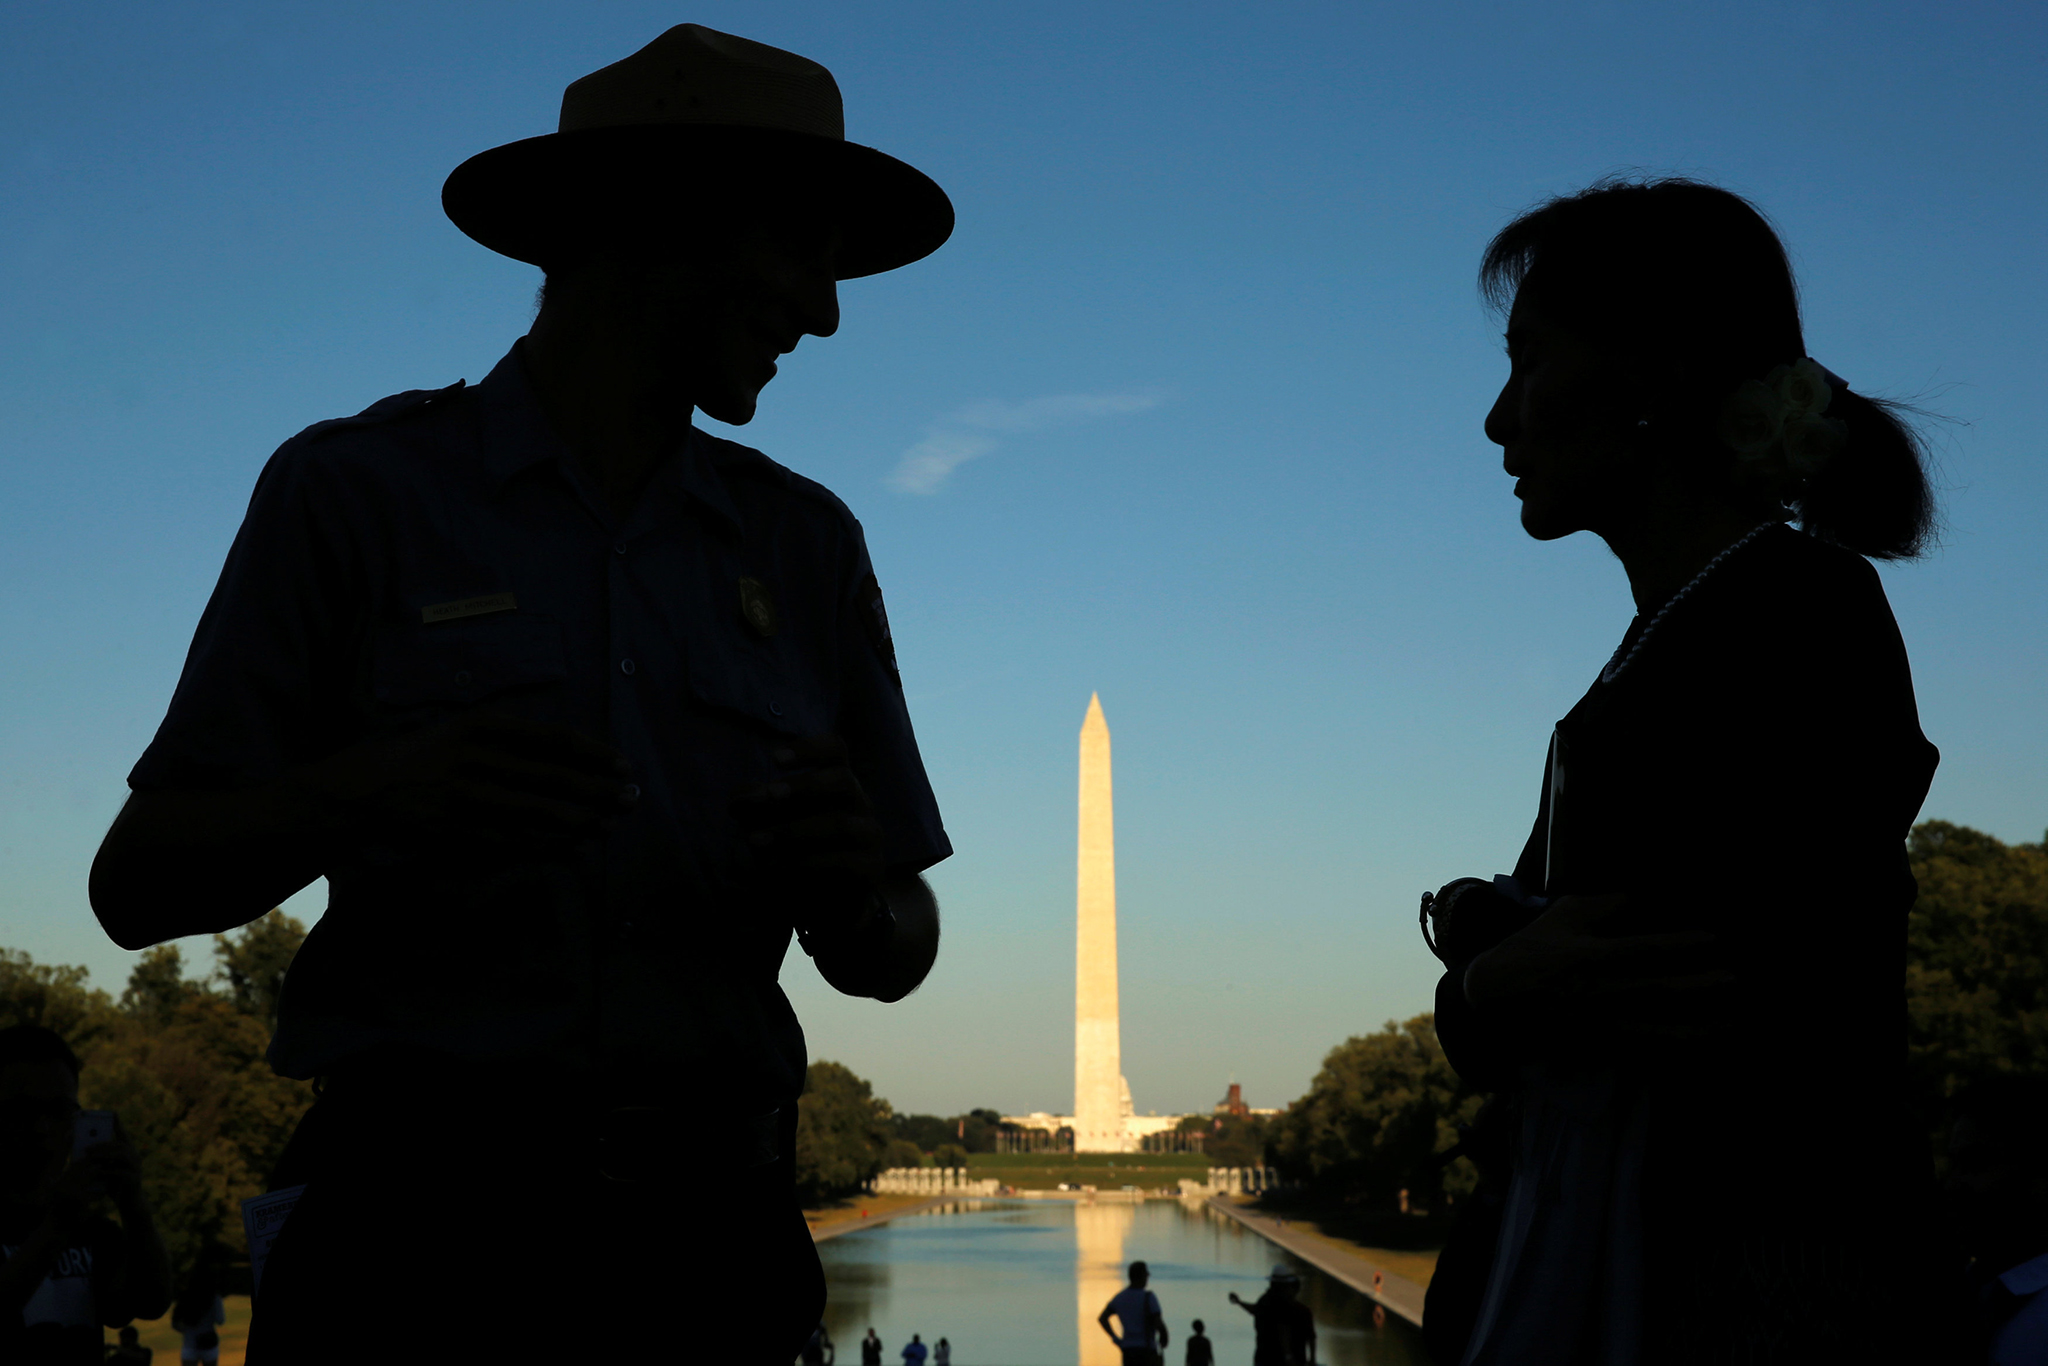 The Washington Monument provides a backdrop as Myanmar's State Counsellor Aung San Suu Kyi is guided by U.S. National Park Service Ranger Heath Mitchell (L) on a visit to the Lincoln Memorial in Washington, U.S. September 14, 2016. REUTERS/Jonathan Ernst     TPX IMAGES OF THE DAY